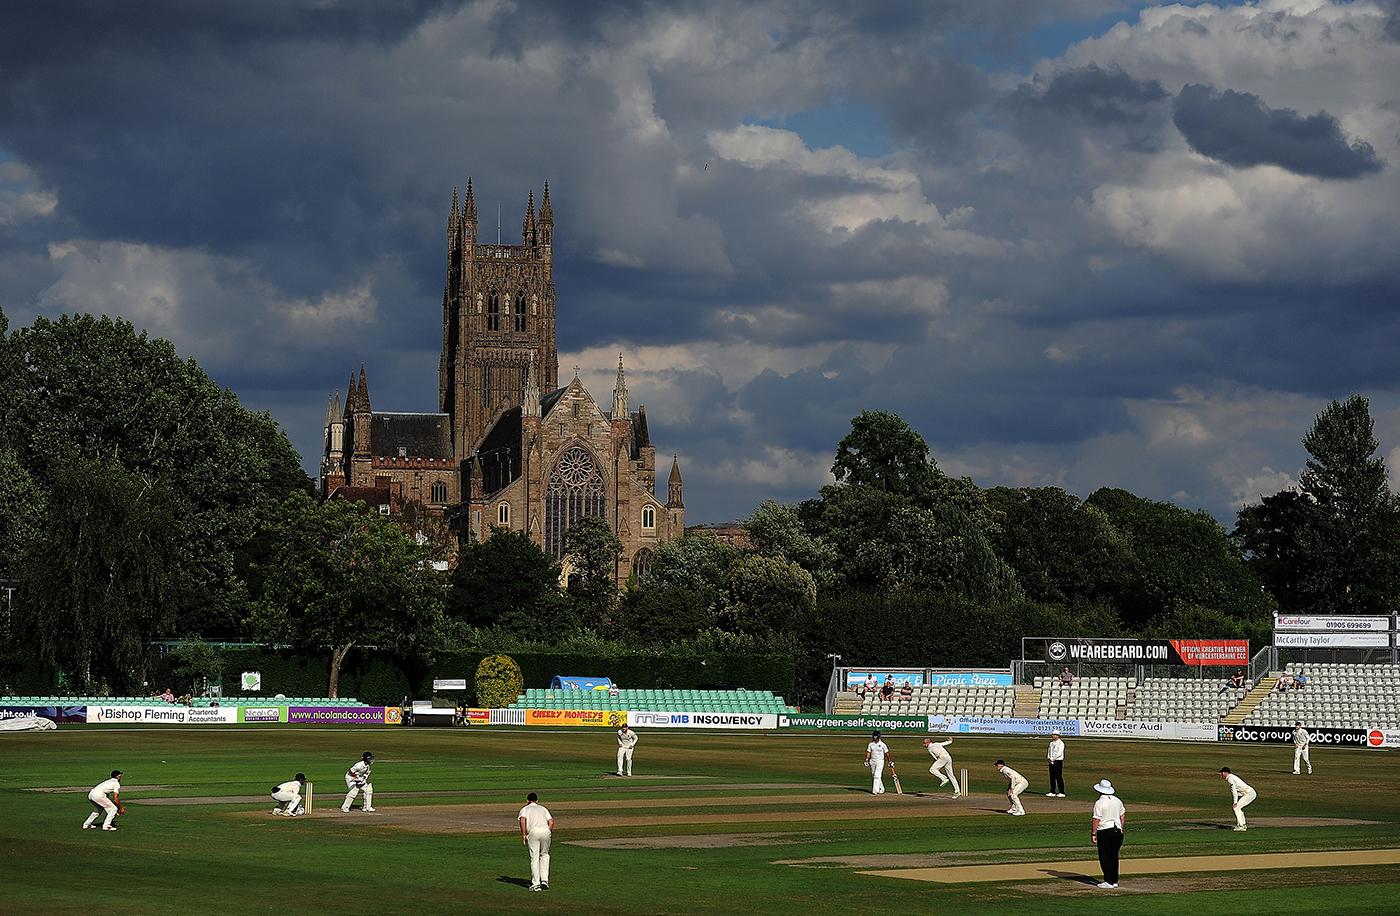 England Lions vs India A in Worcester in 2018. A-team cricket has been a major priority for the Indian board and its role as a proving ground has been recognised